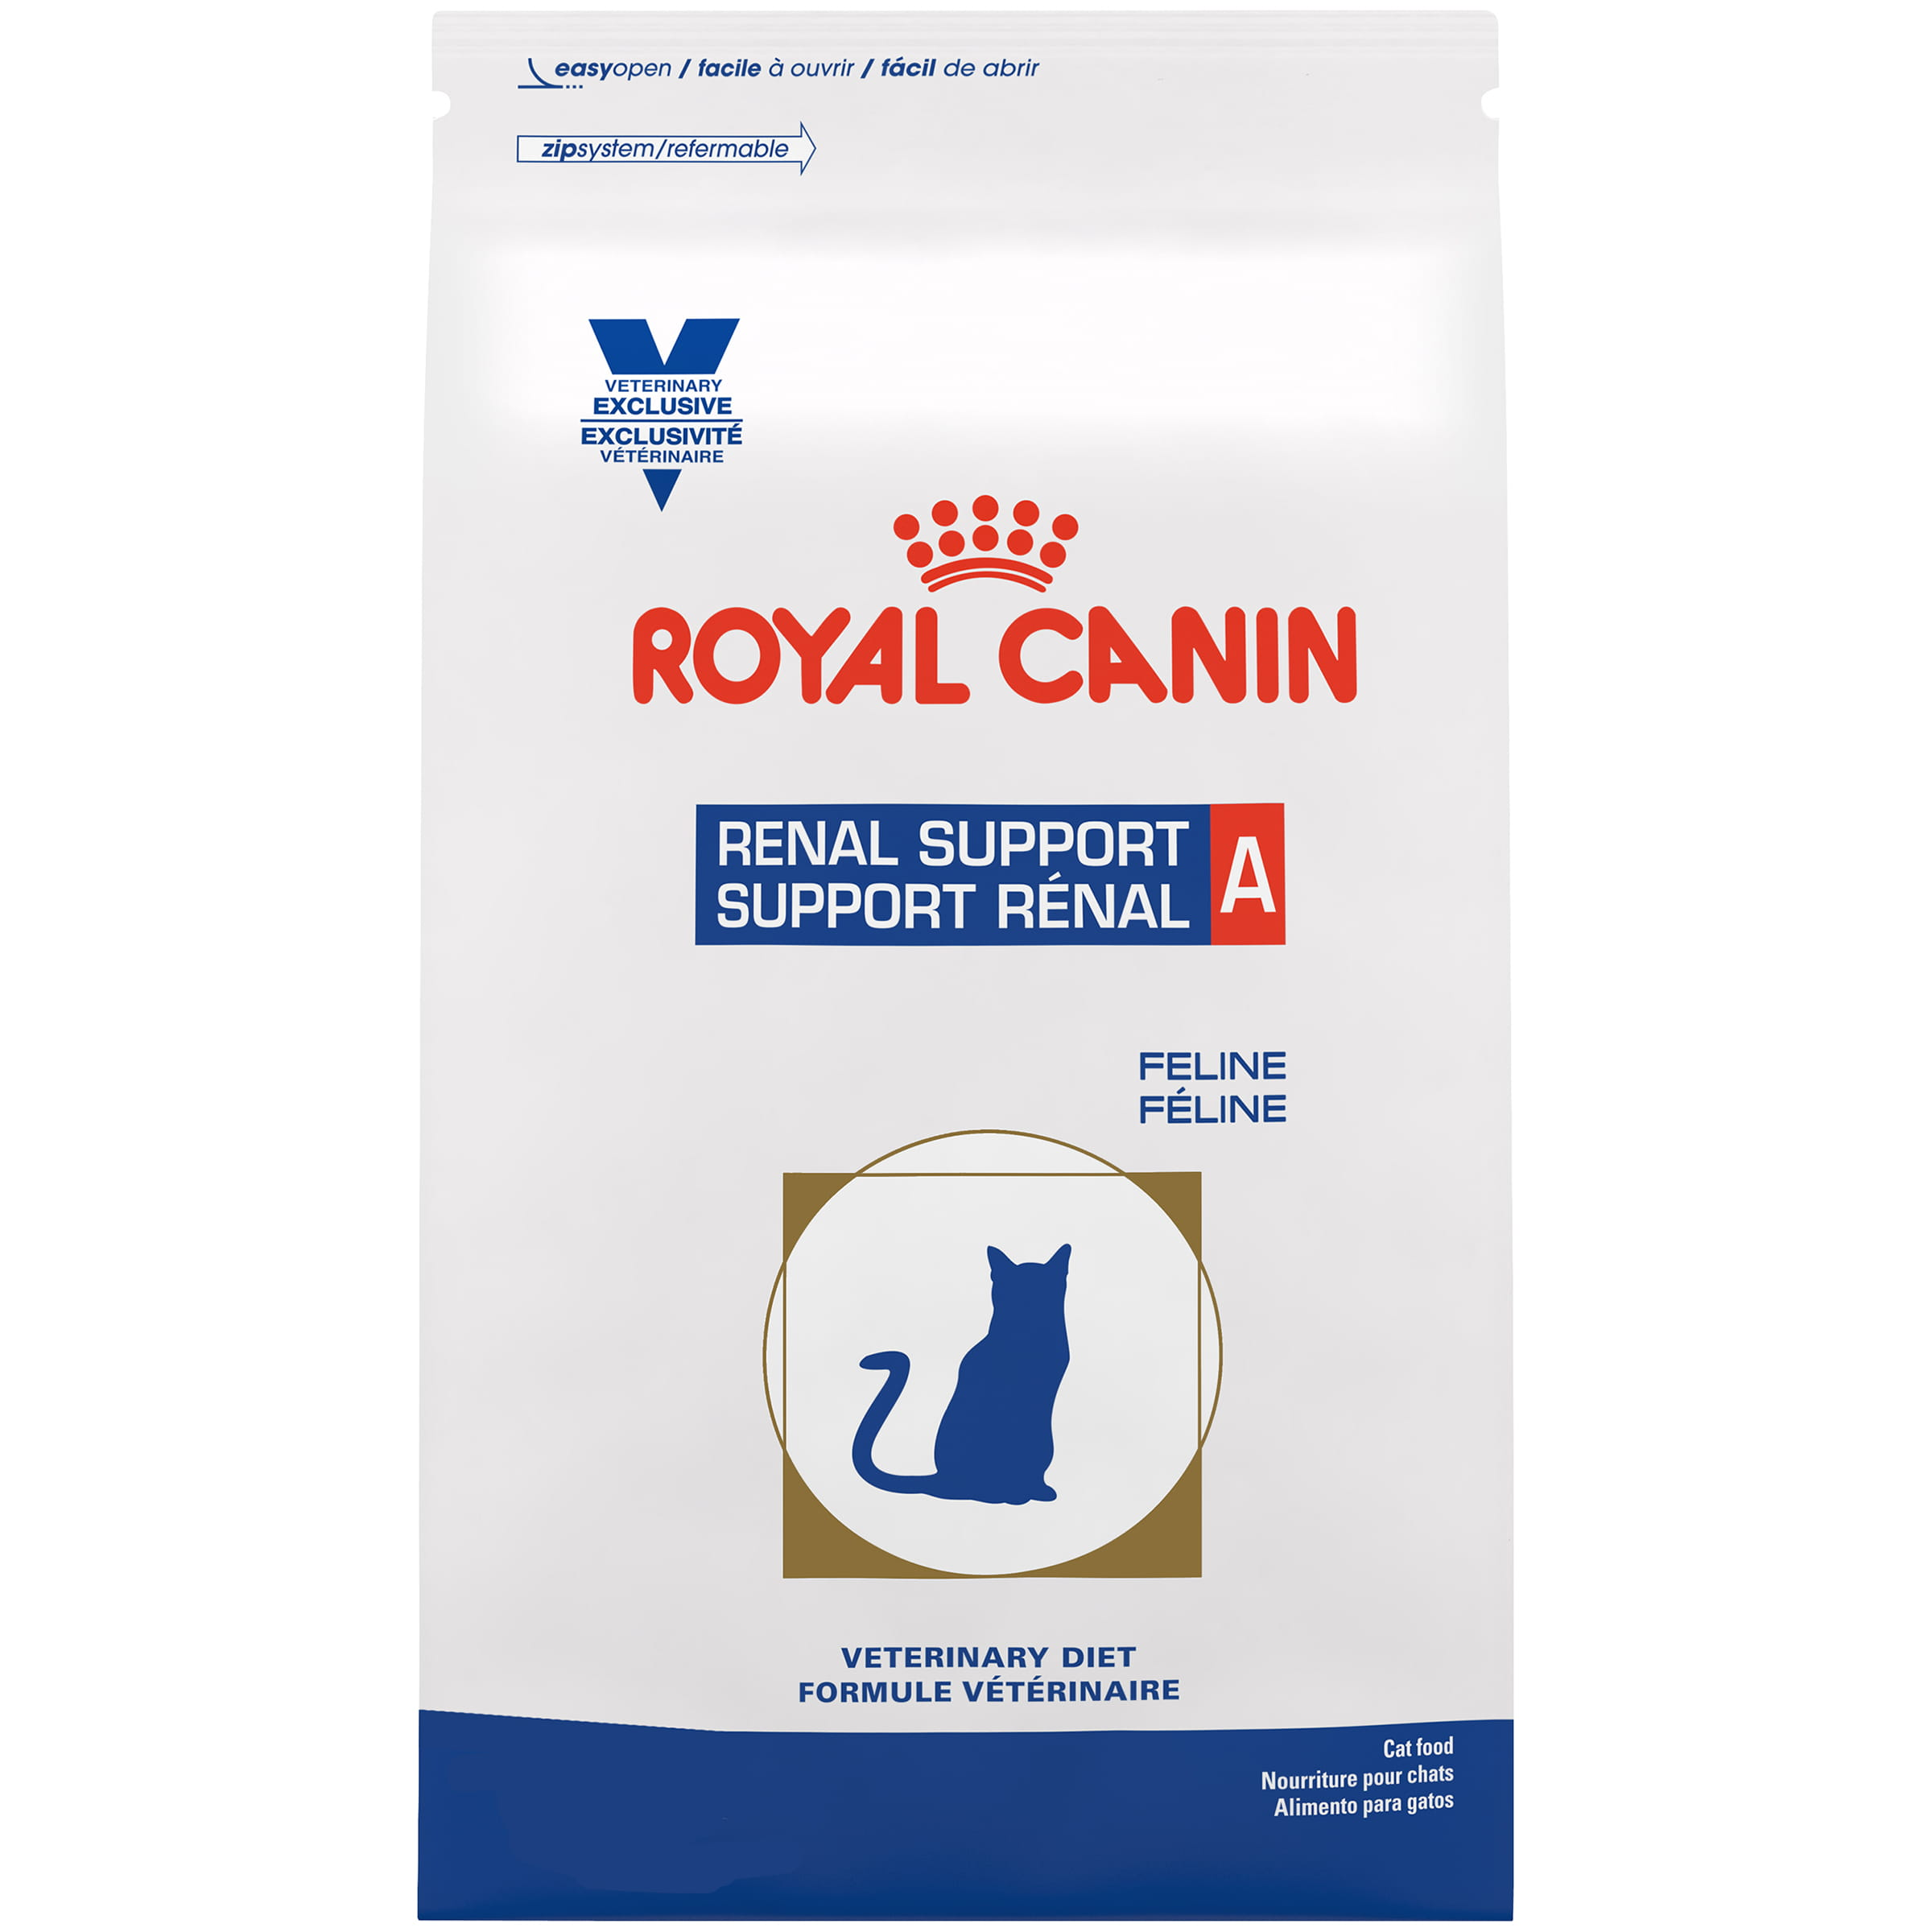 Feline Renal Support A Dry Cat Food